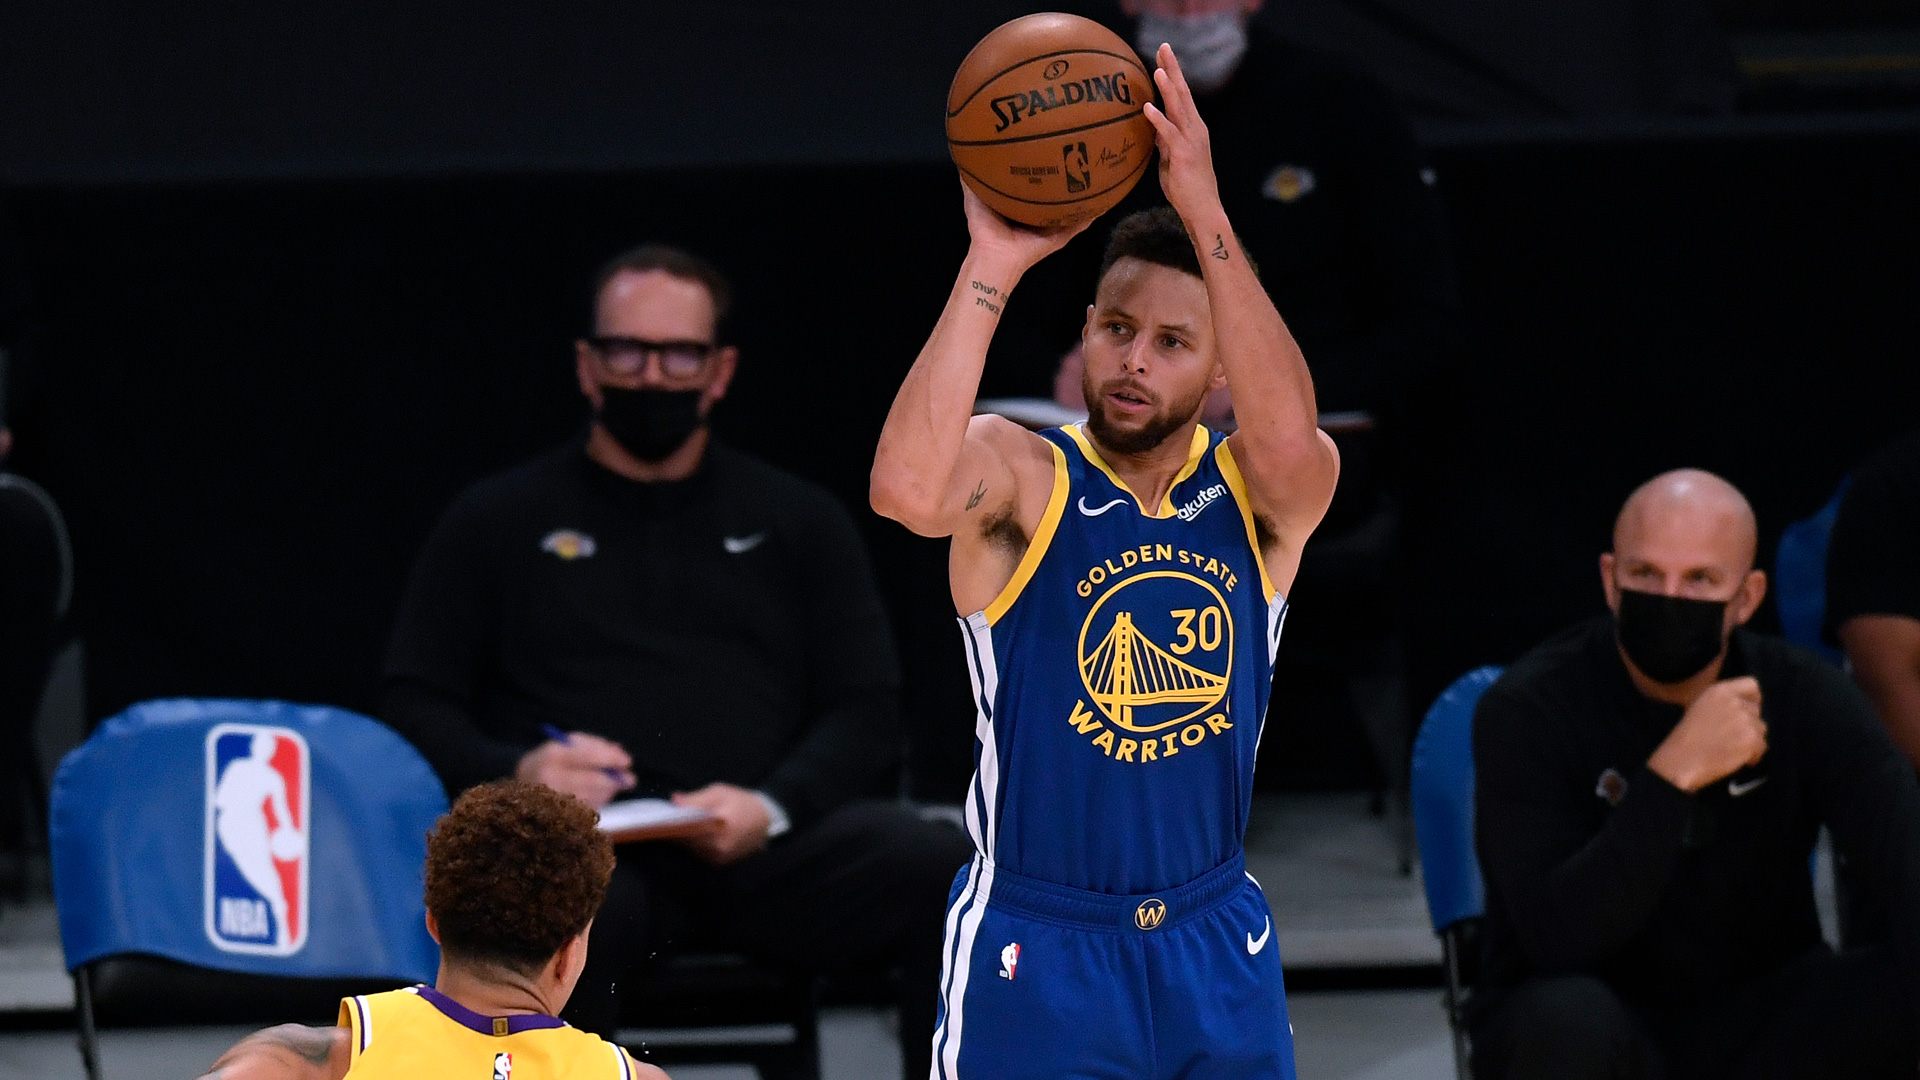 Stephen Curry set to pass Reggie Miller for No. 2 all-time in 3-pointers made